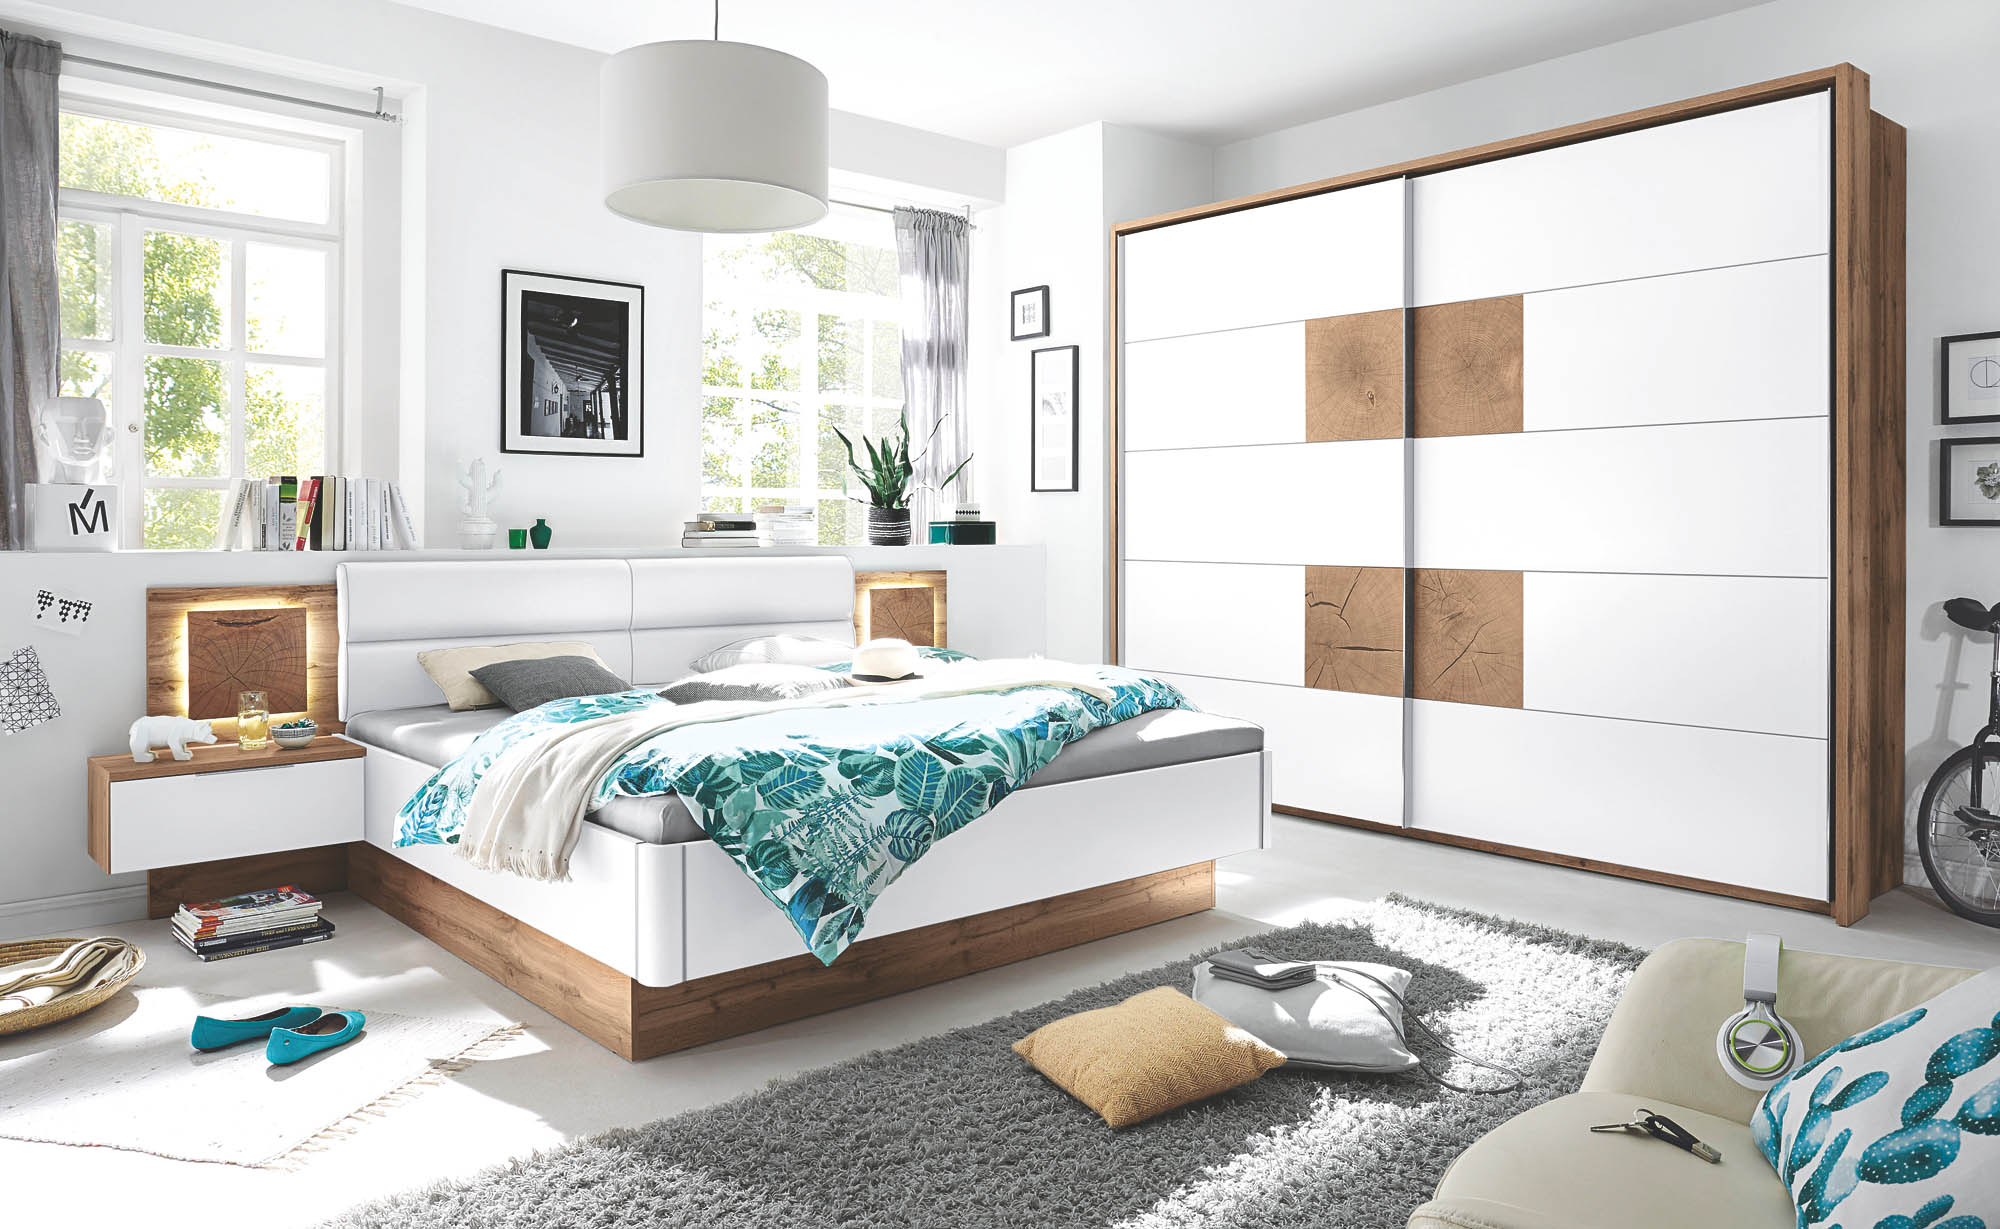 180x200 bettanlage inkl 2 nachtkommoden u beleuchtung capri von pol power wildeiche wei. Black Bedroom Furniture Sets. Home Design Ideas